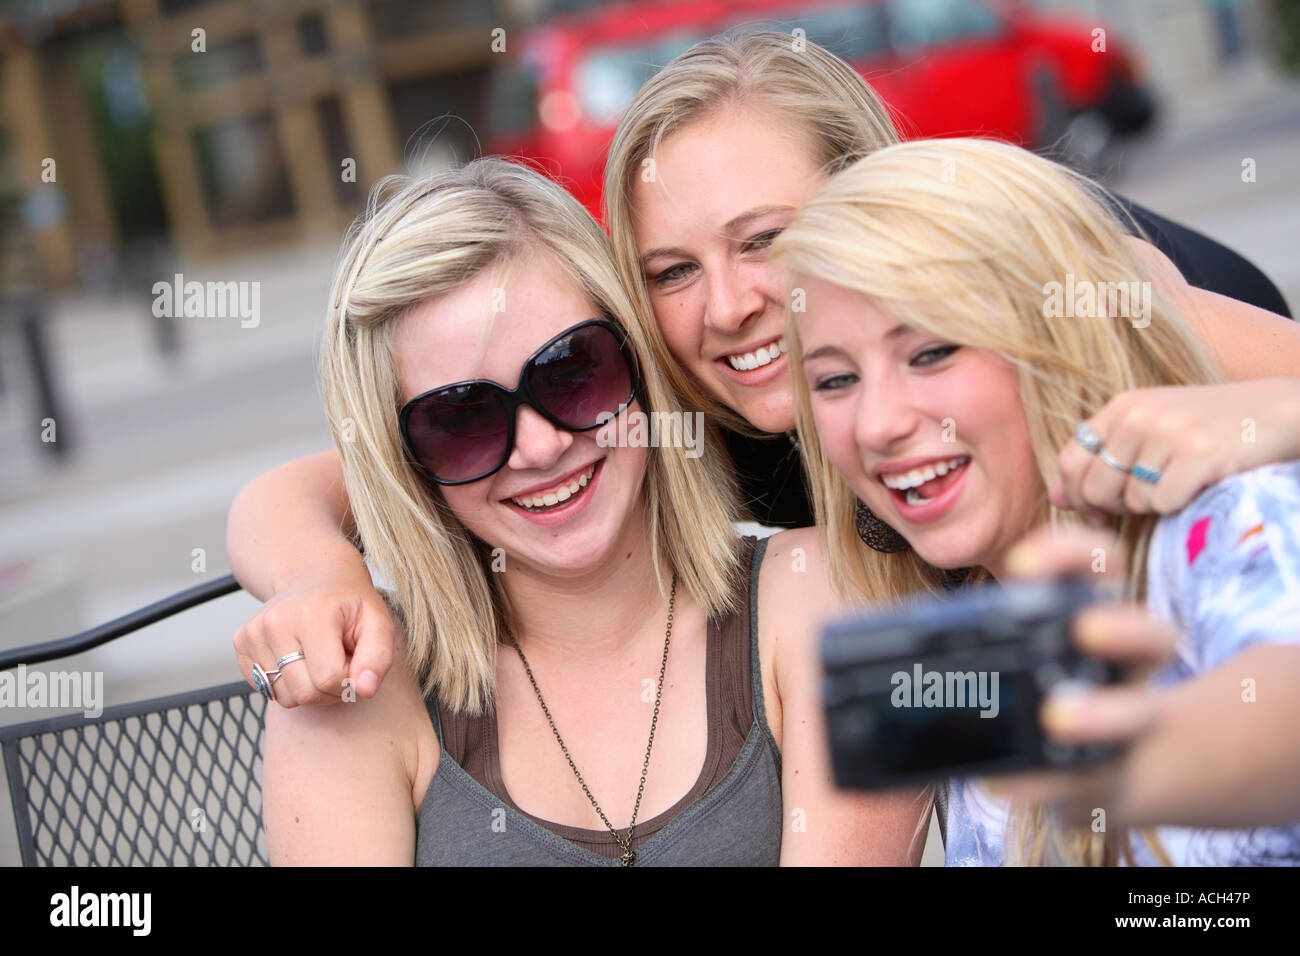 Three girls talking a picture together - Stock Image